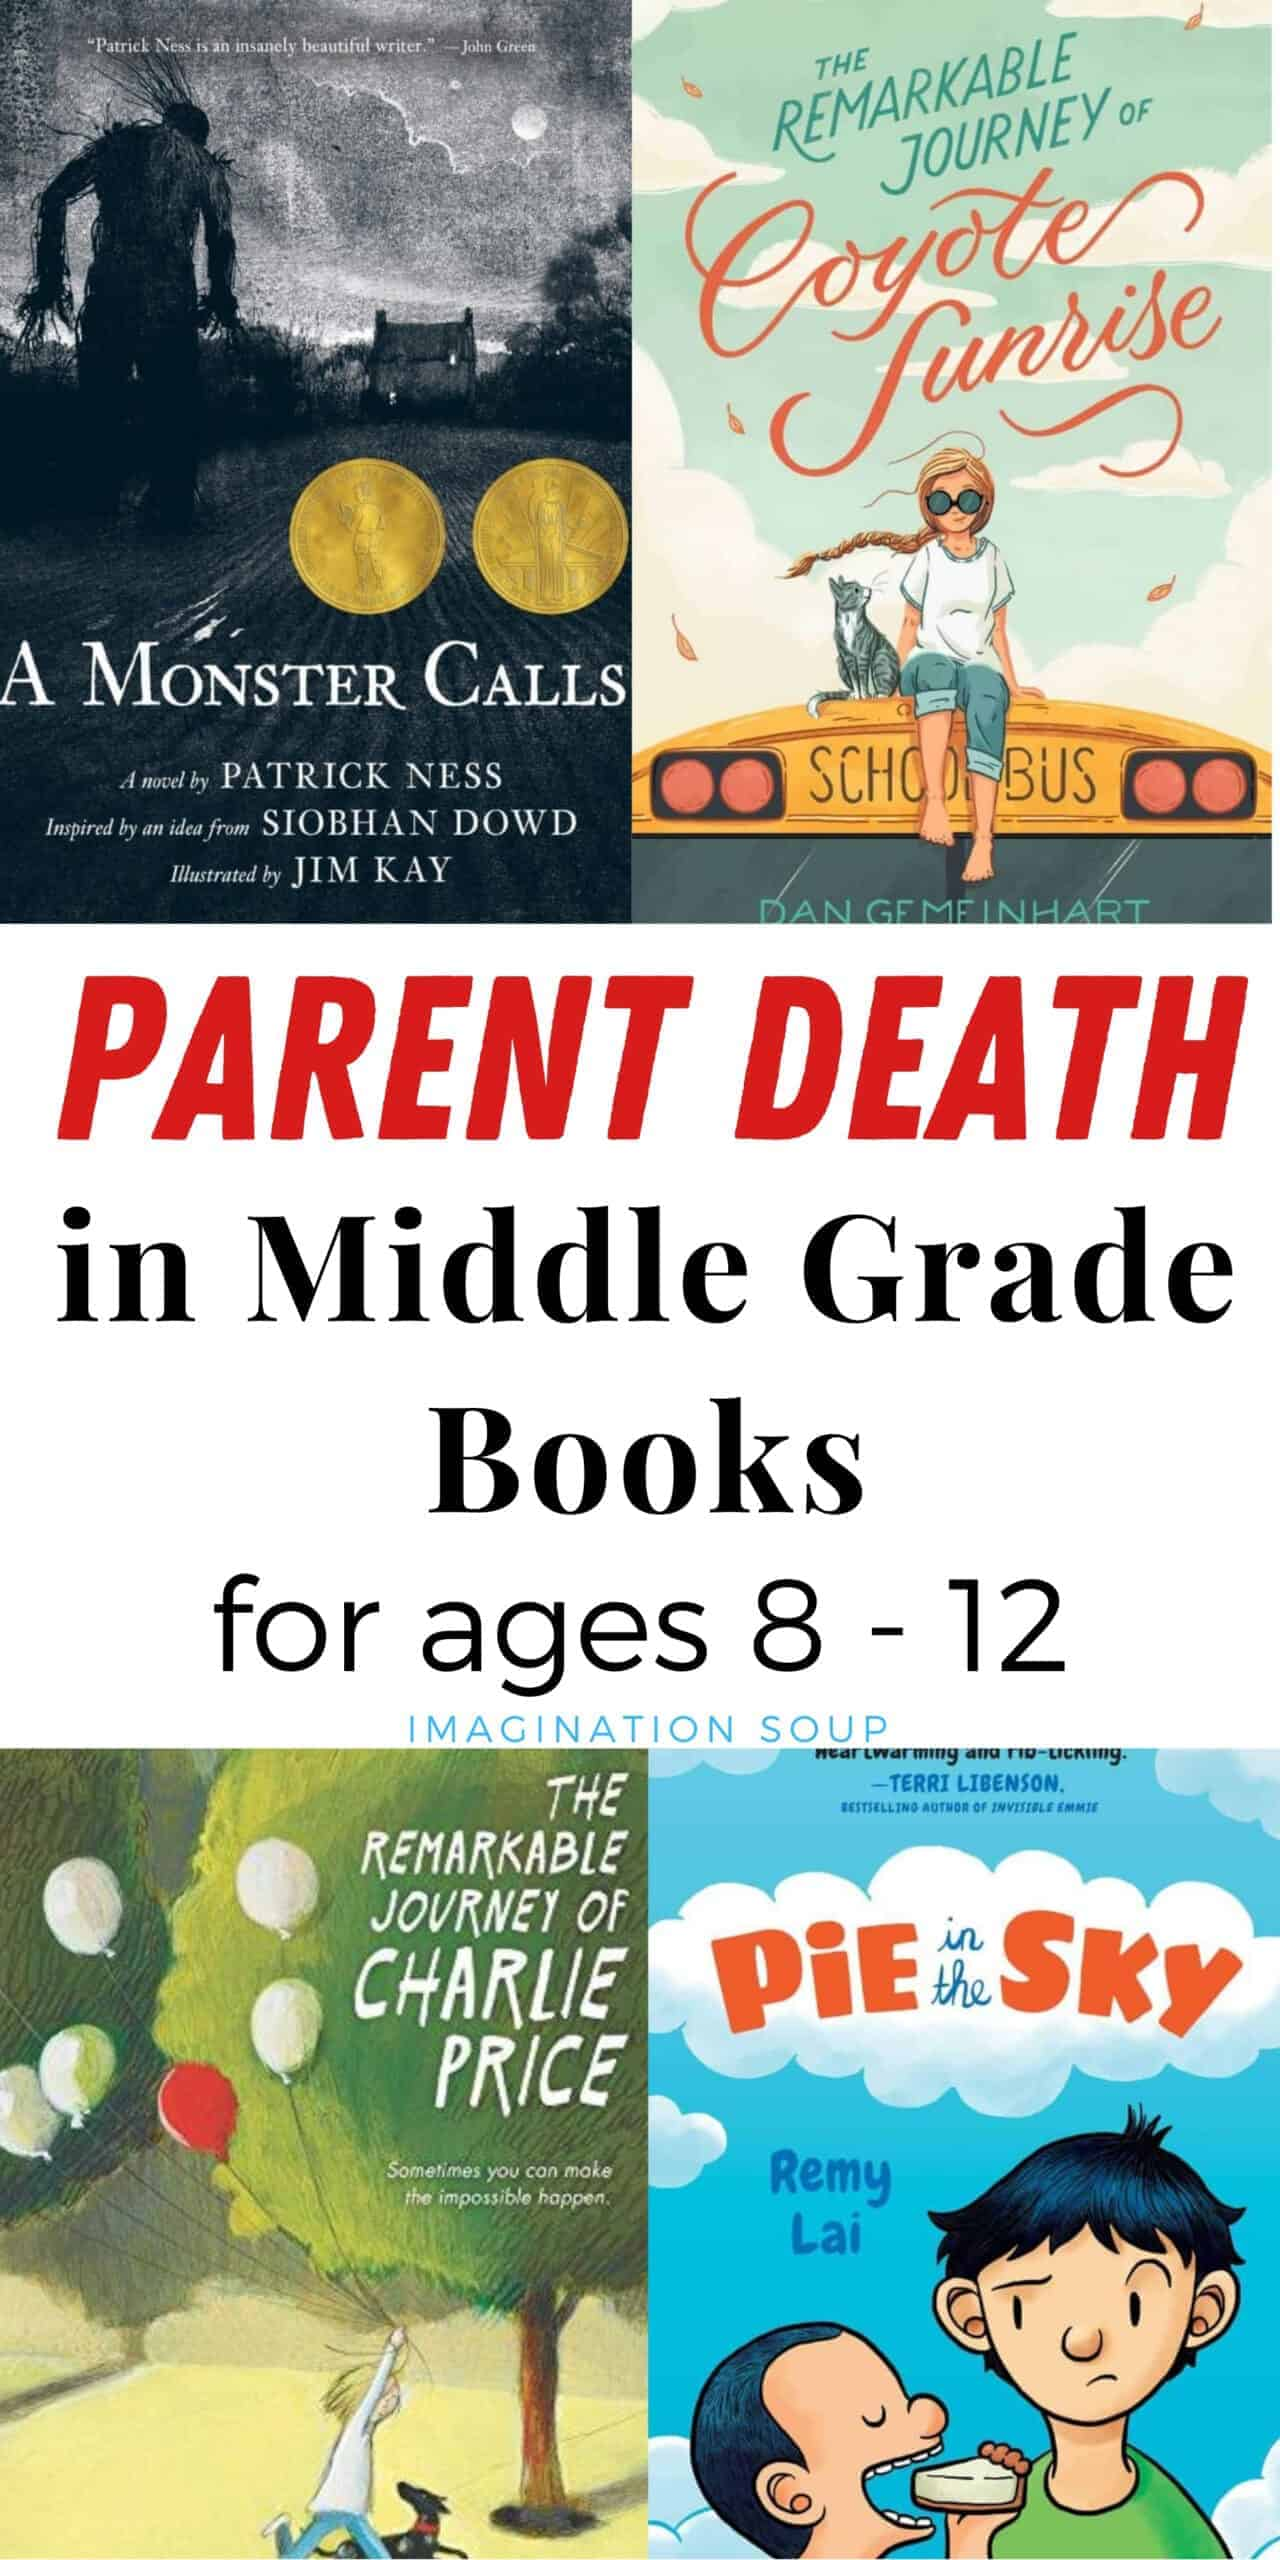 parent death in middle grade books ages 8 to 12